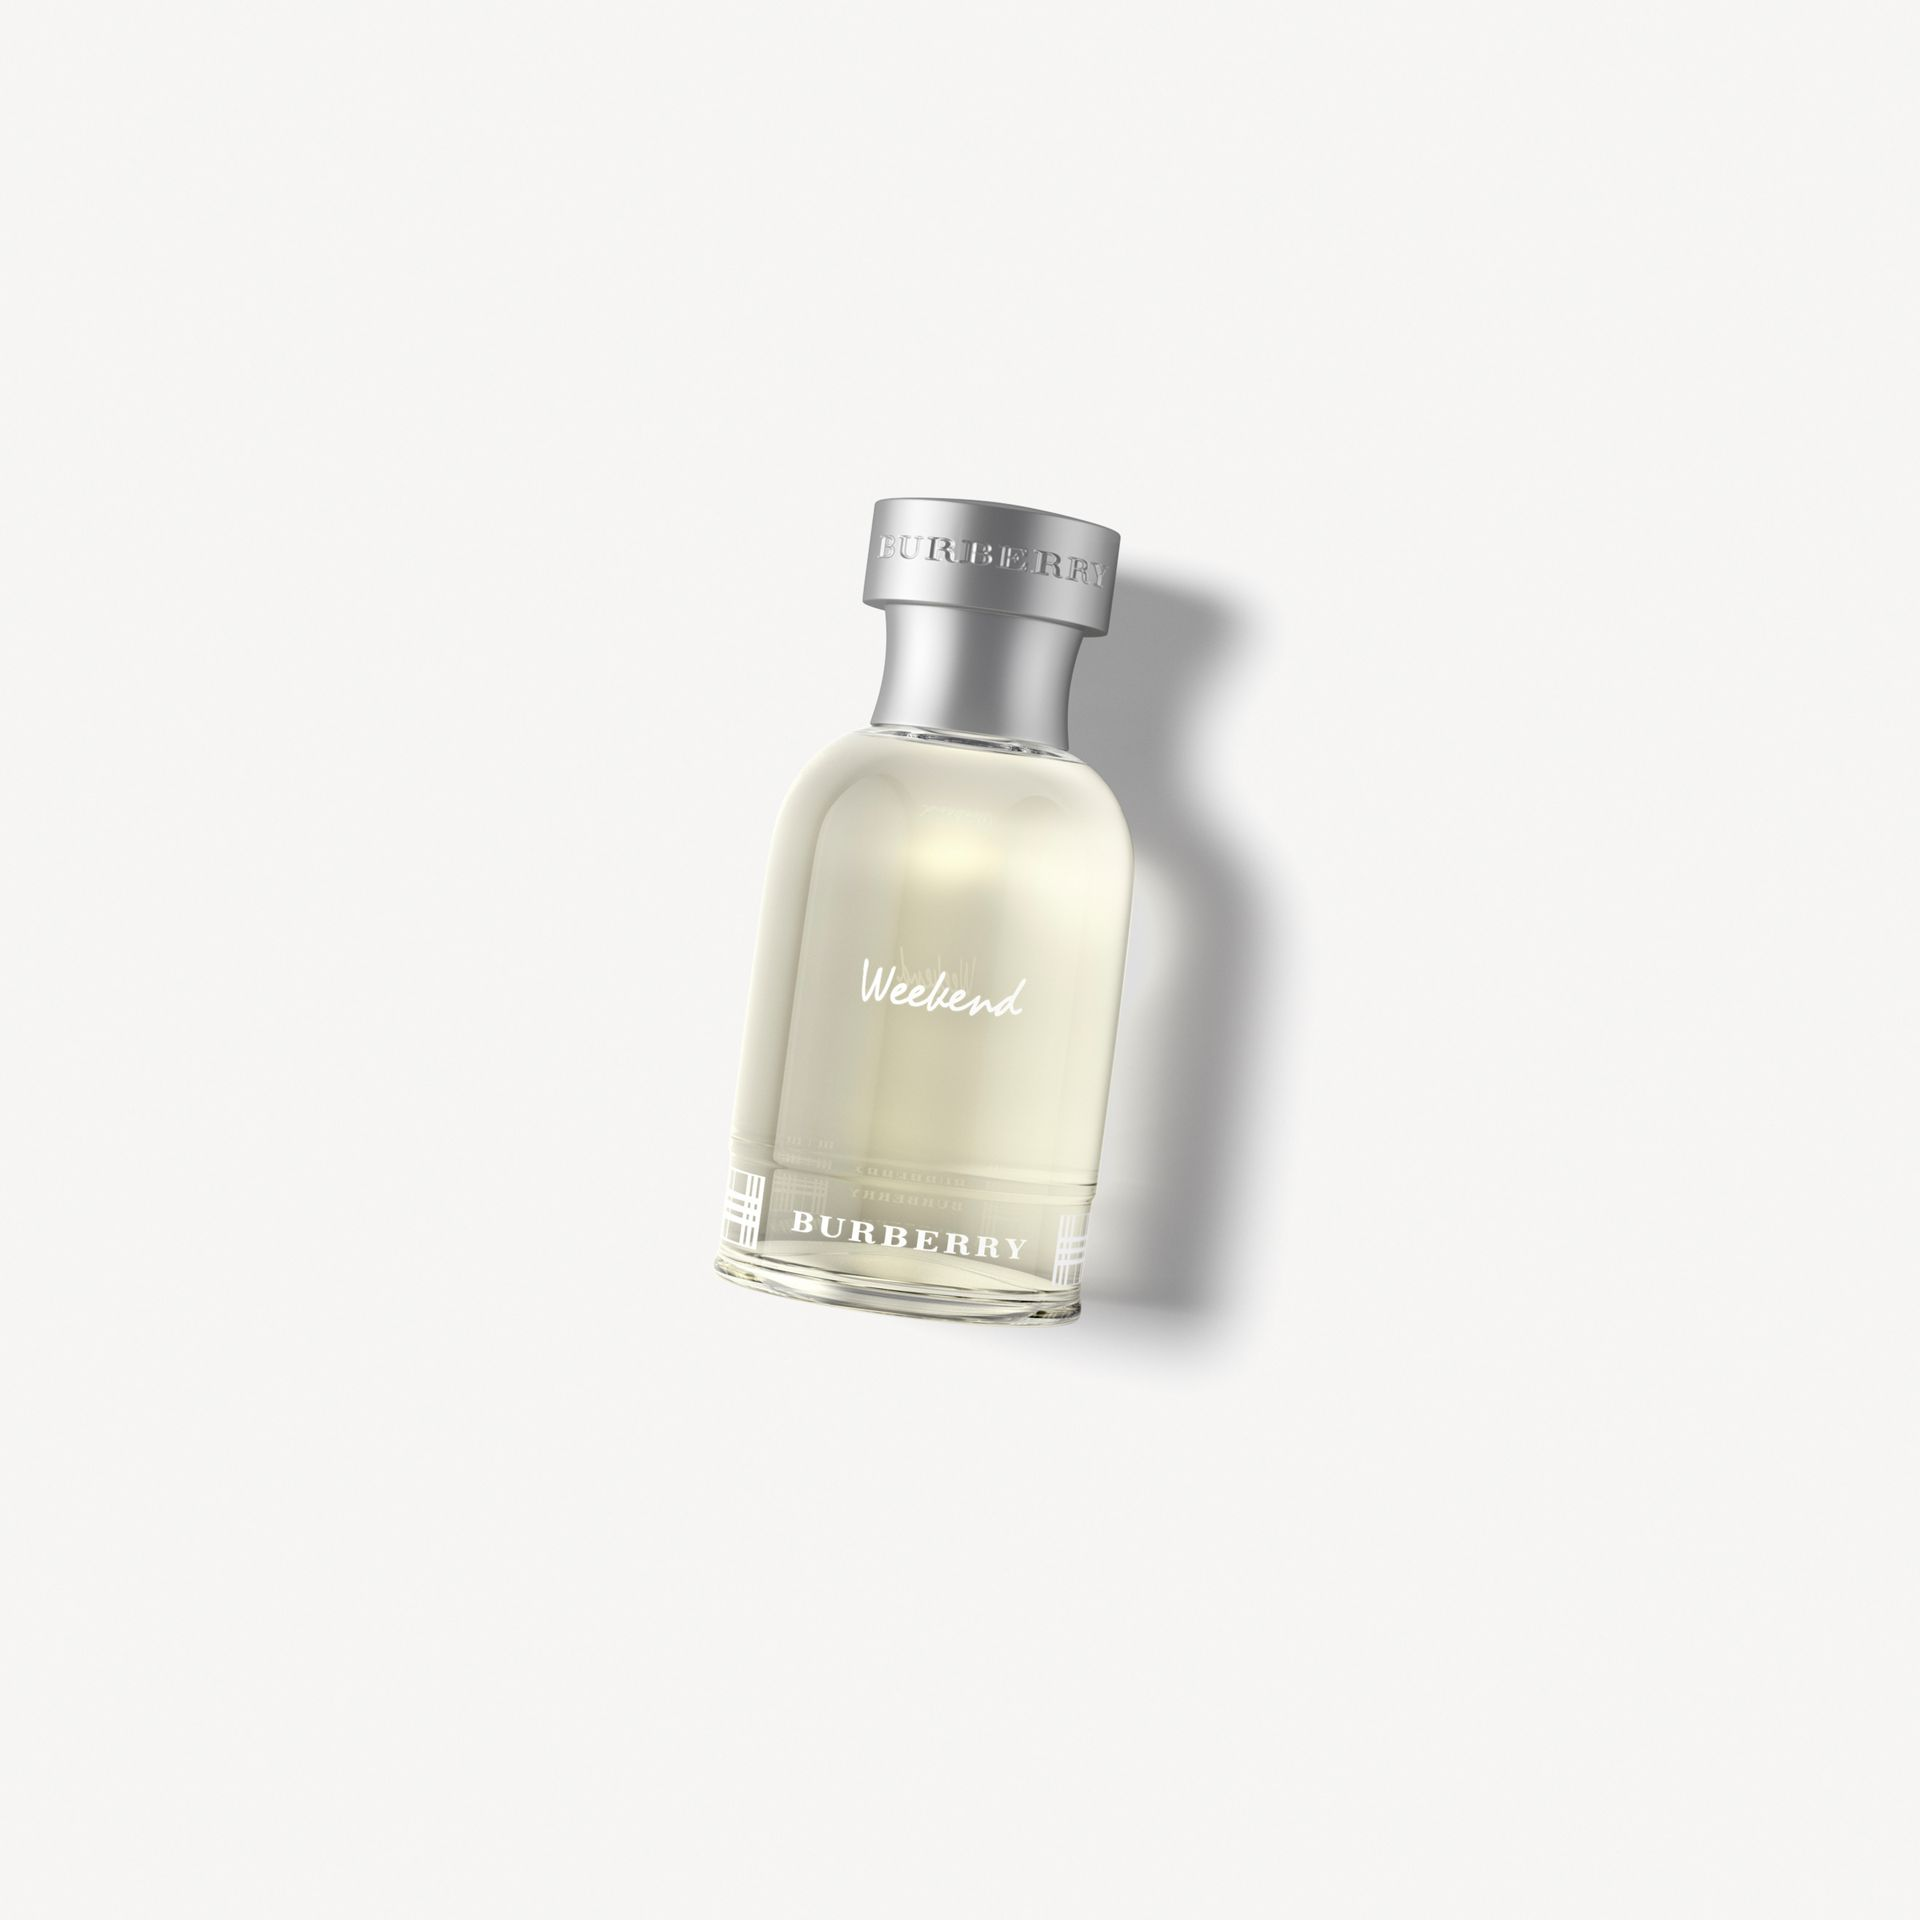 Burberry Weekend Eau de toilette 50 ml - photo de la galerie 1